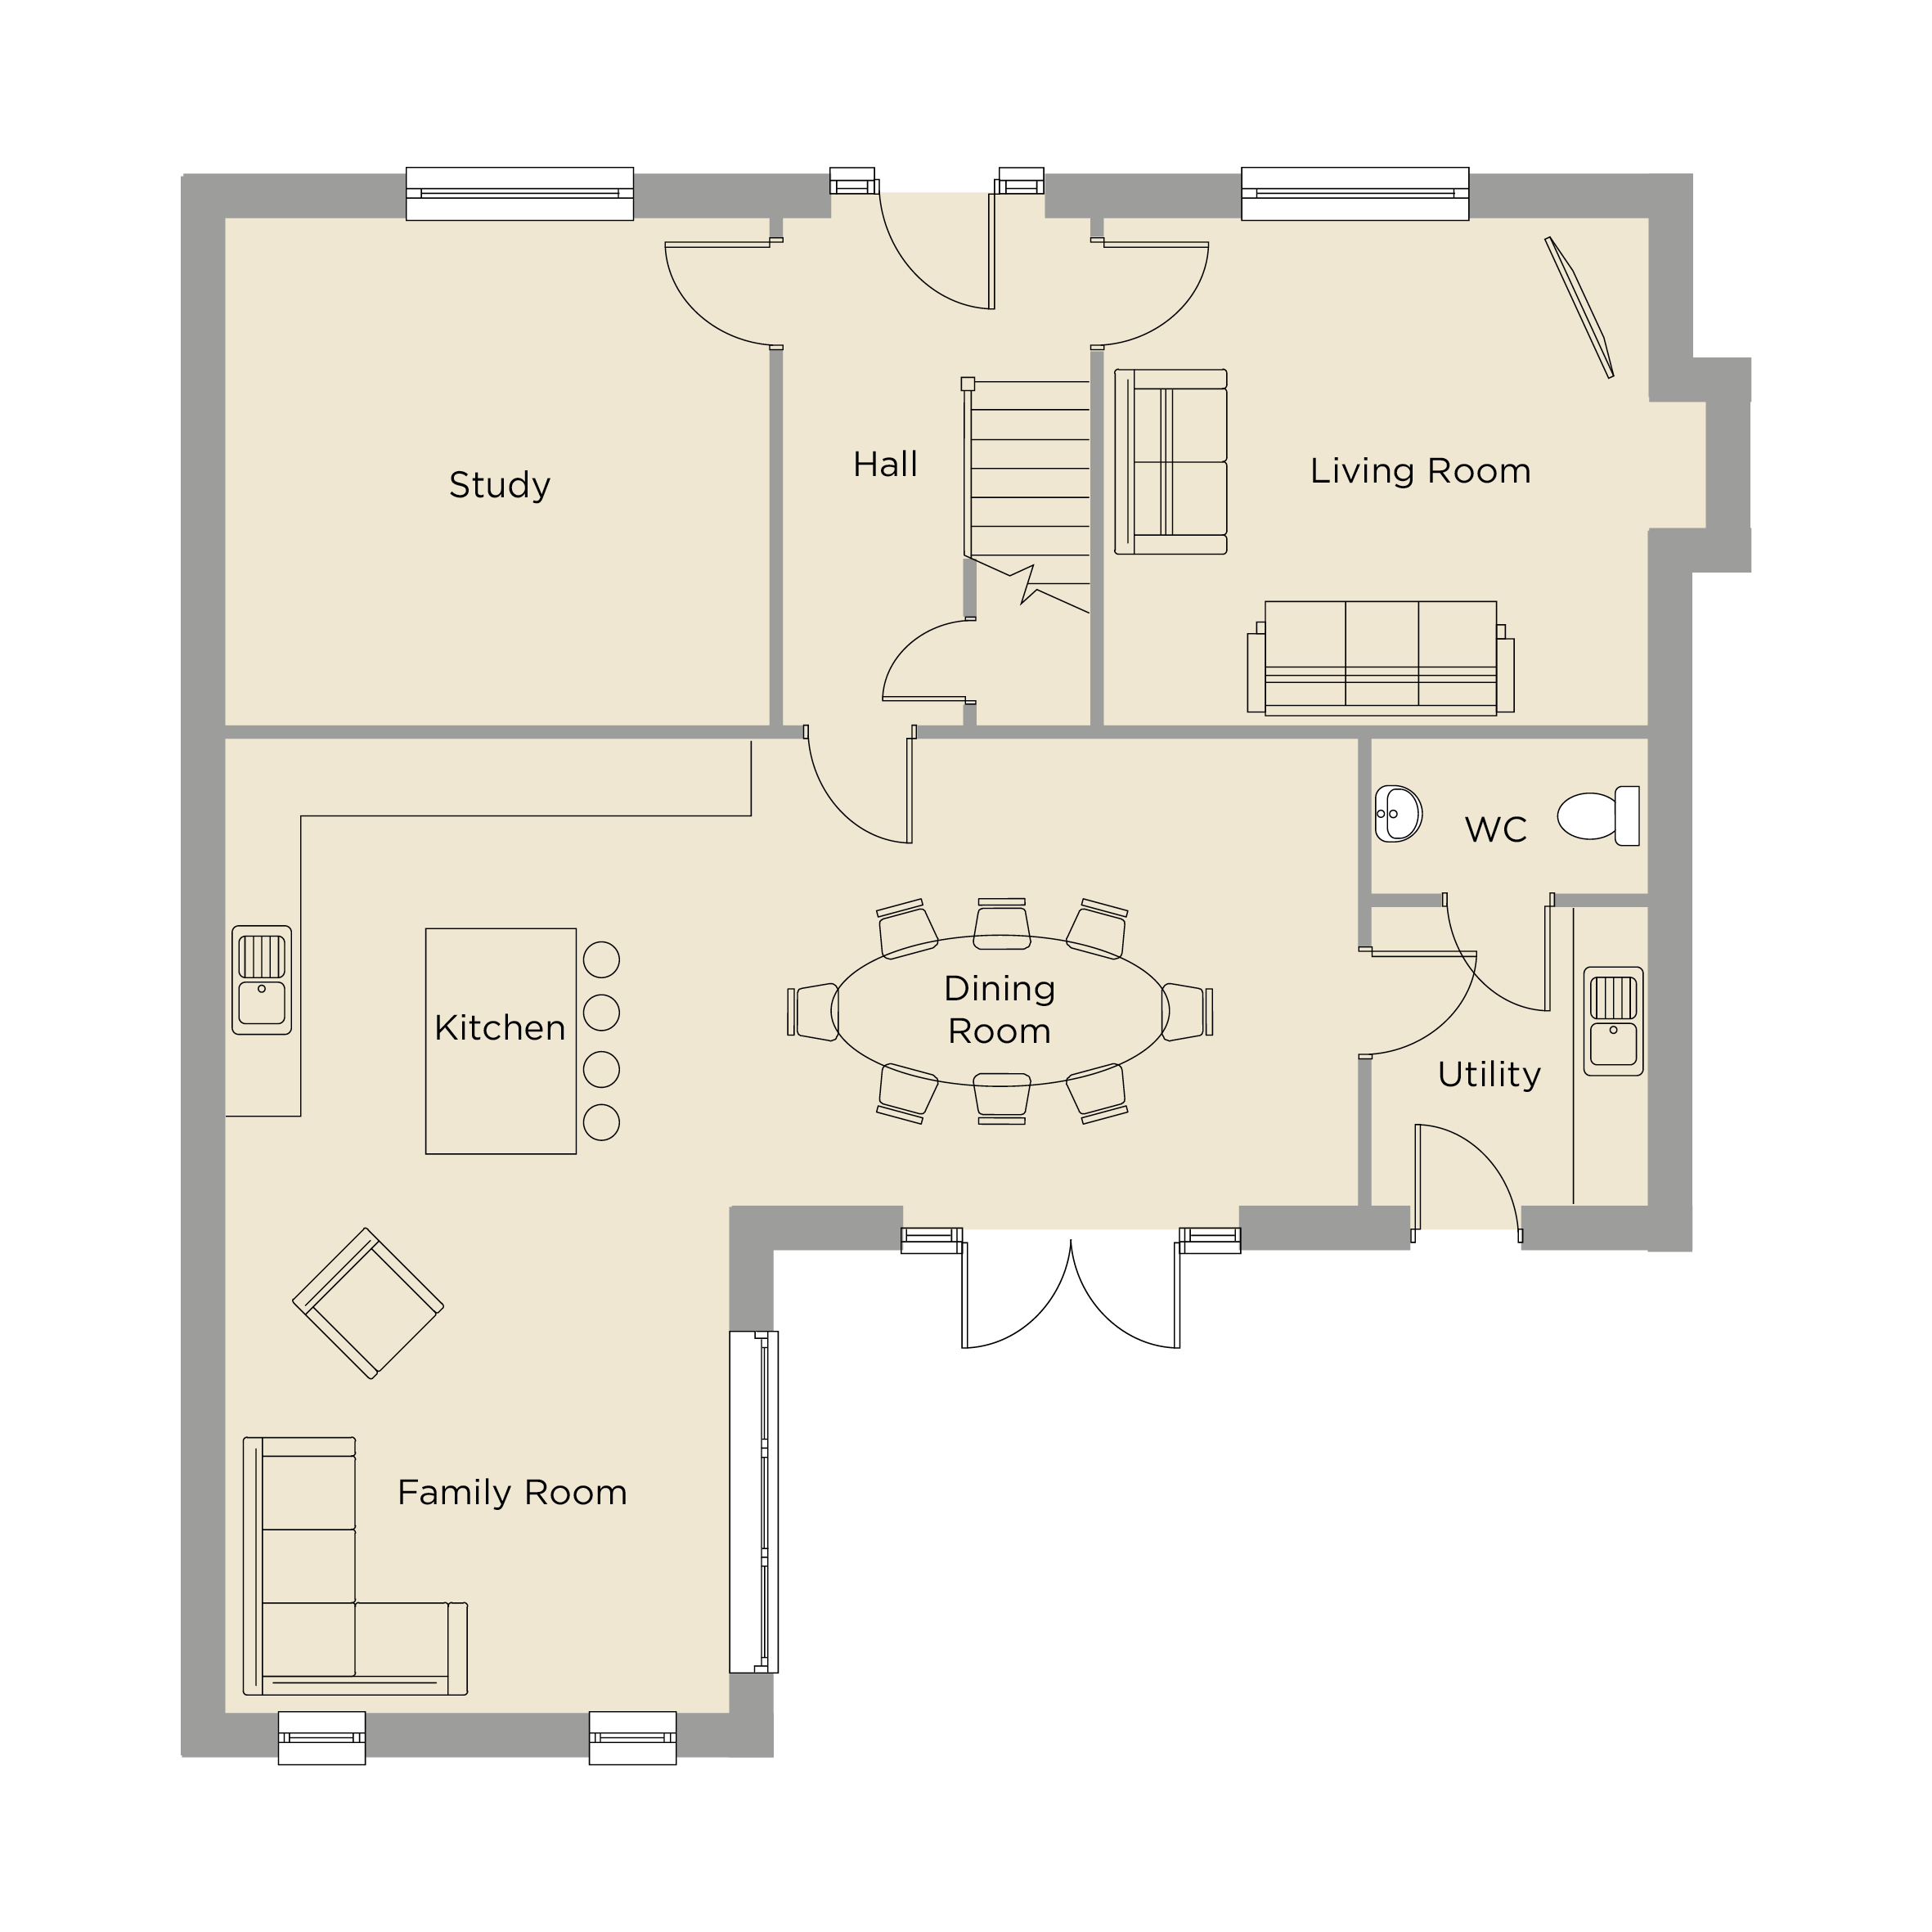 mulberry_vale_skipwith_floor_plans_6.png